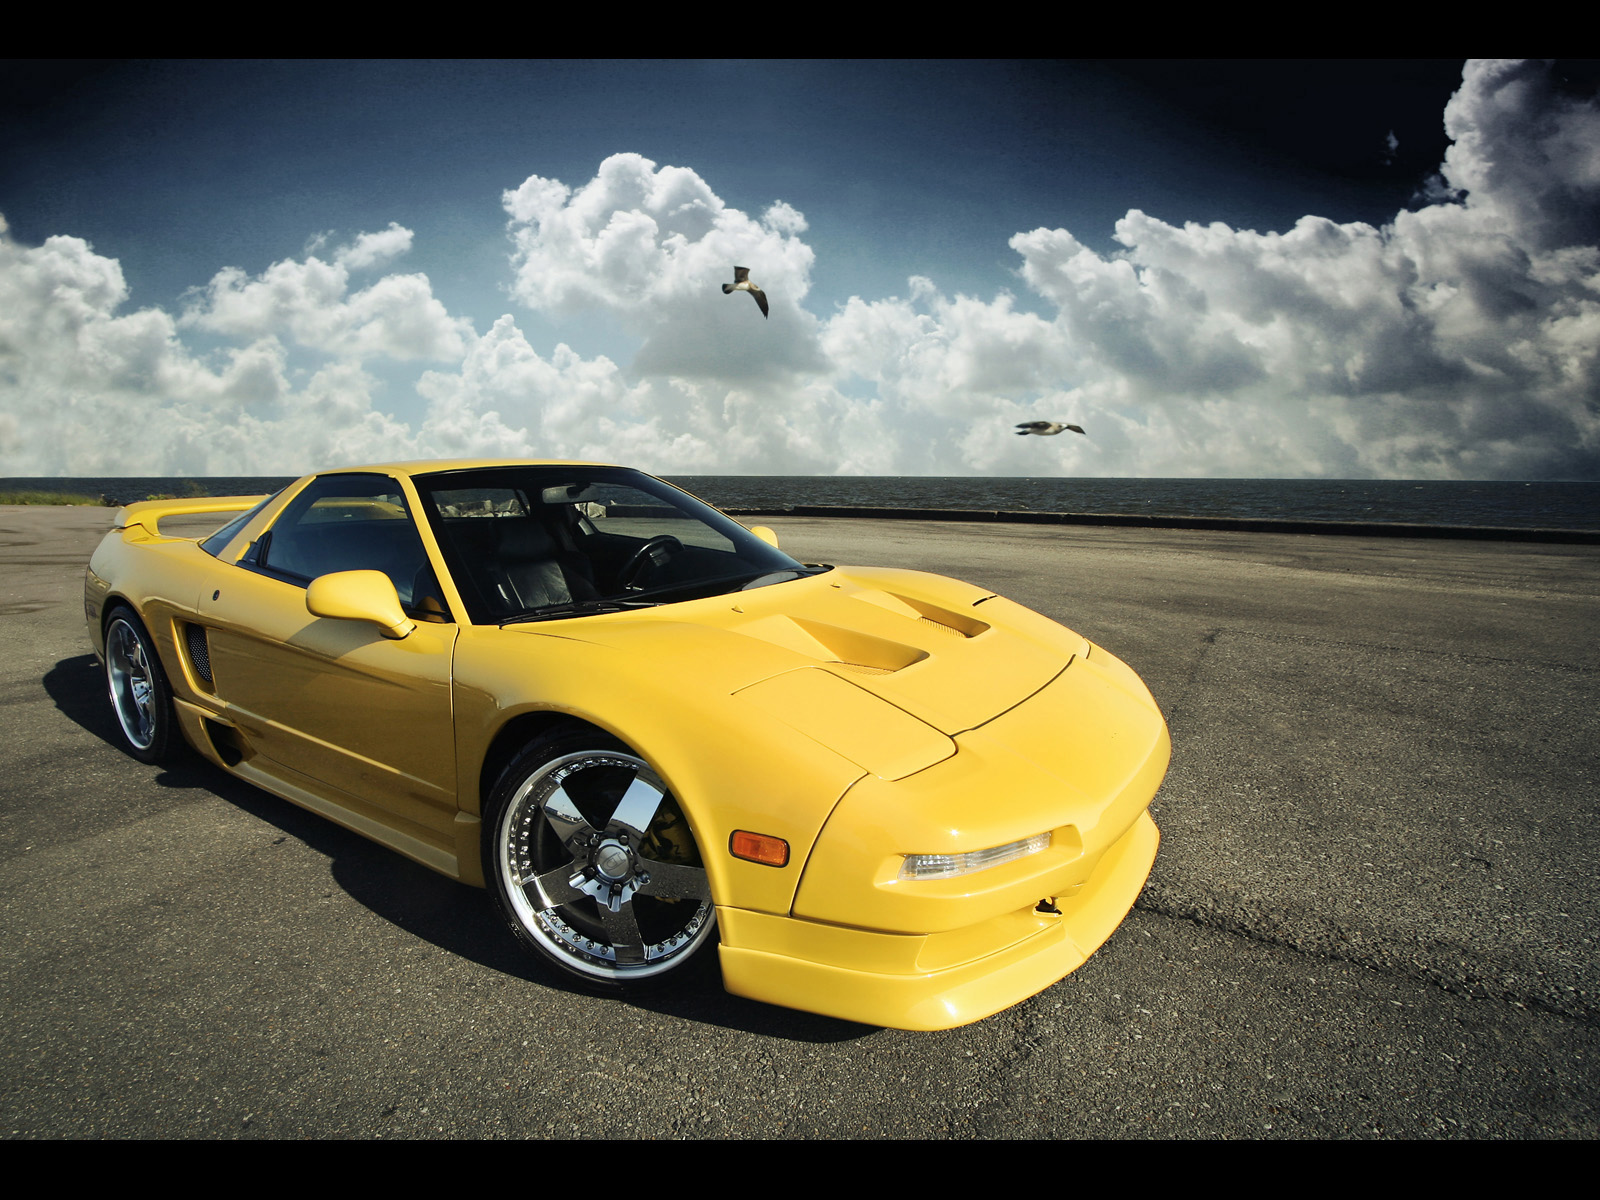 Acura Nsx Picture 49624 Acura Photo Gallery Carsbase Com